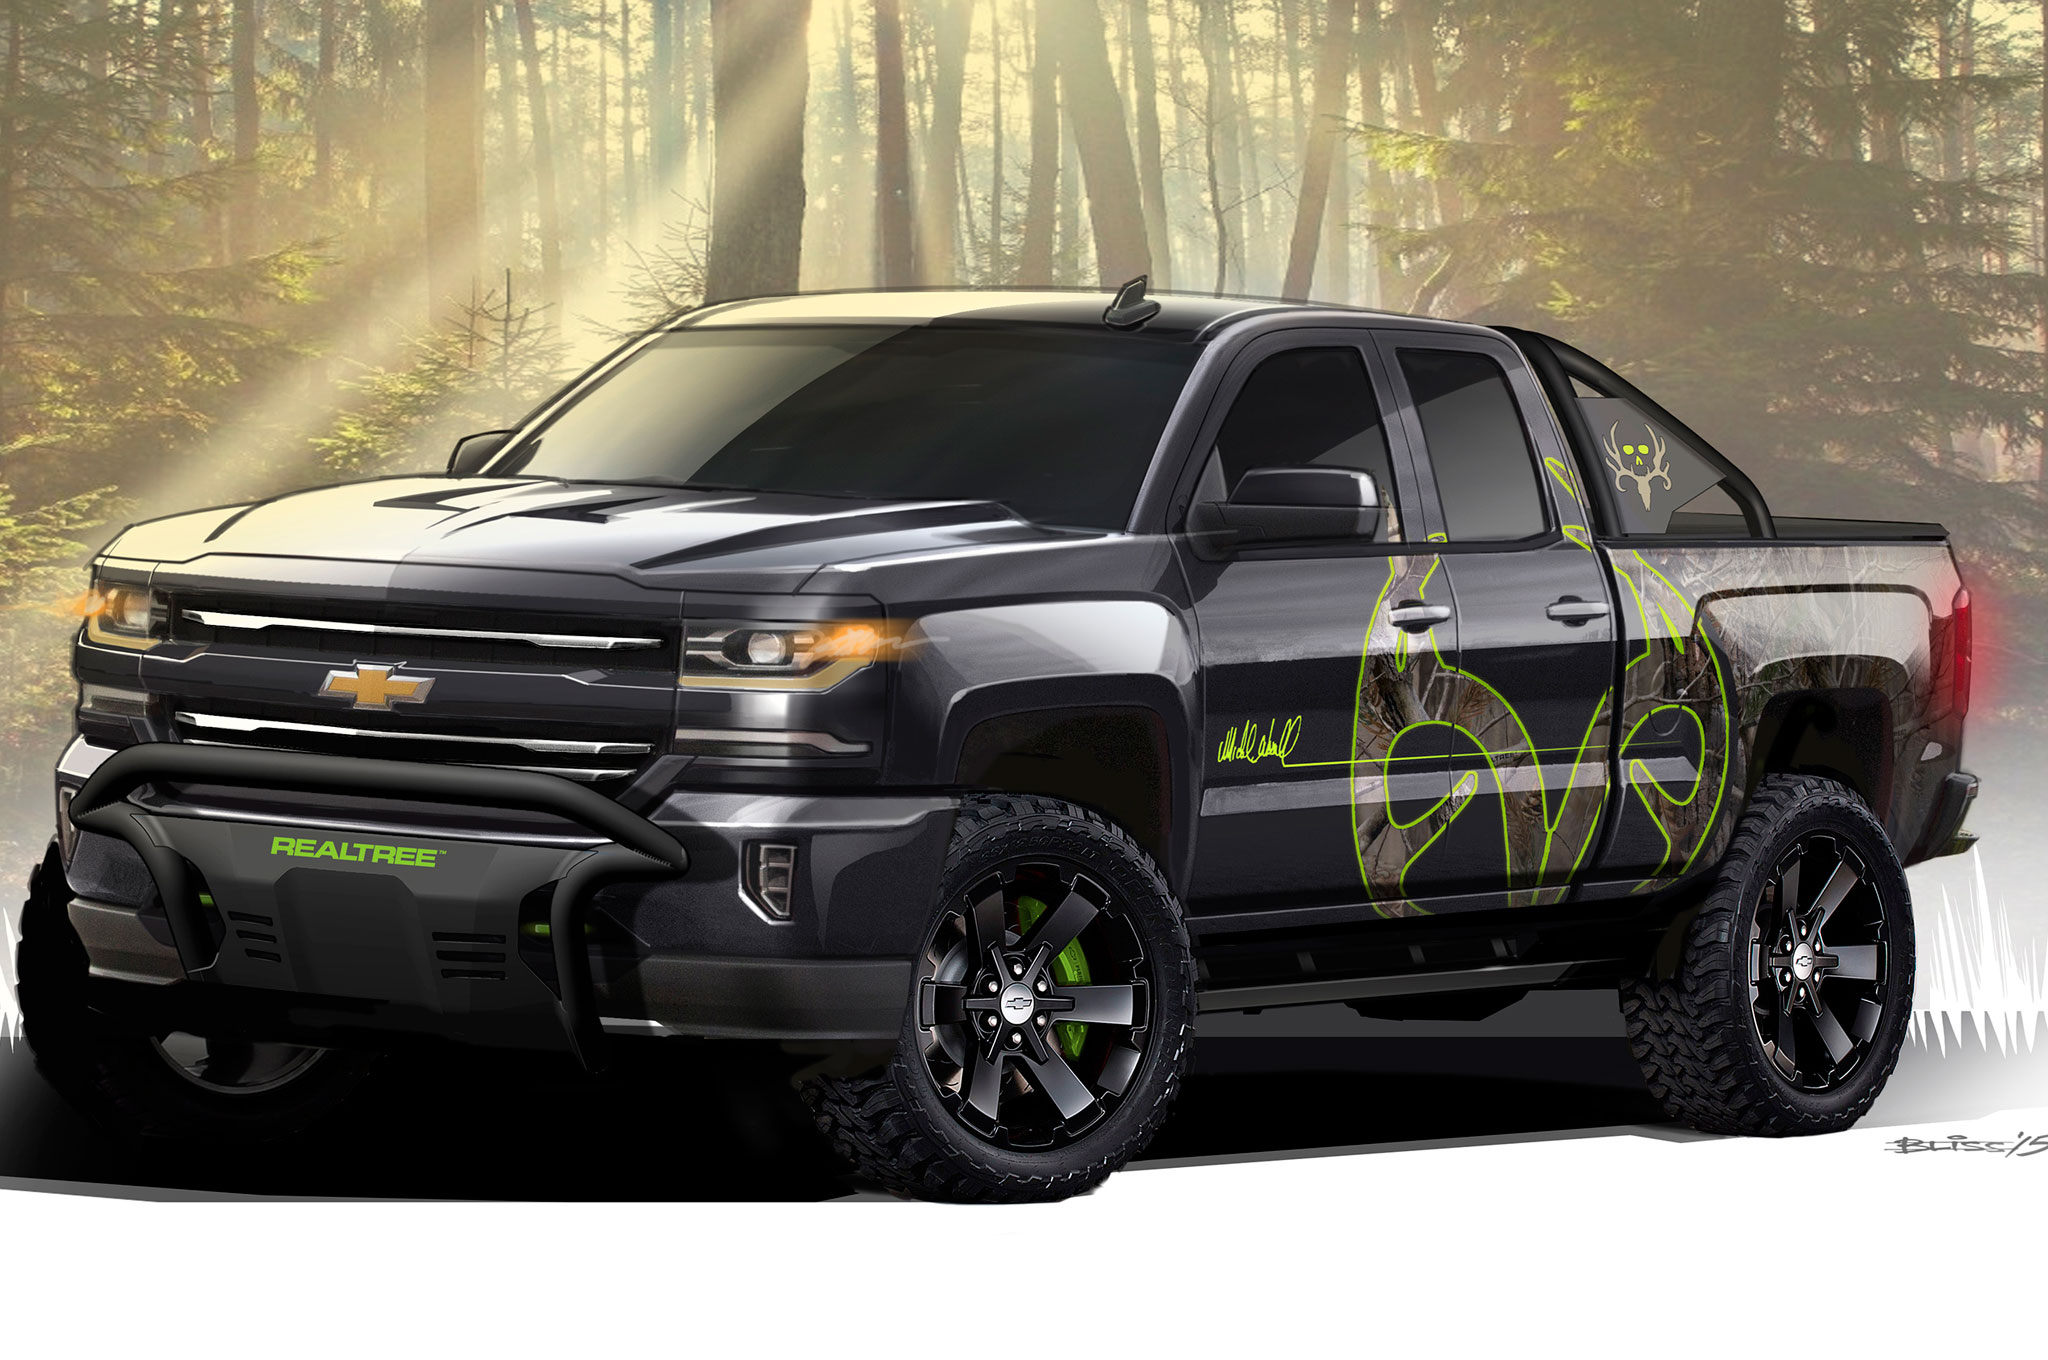 2016 chevrolet silverado adds hunting inspired realtree edition